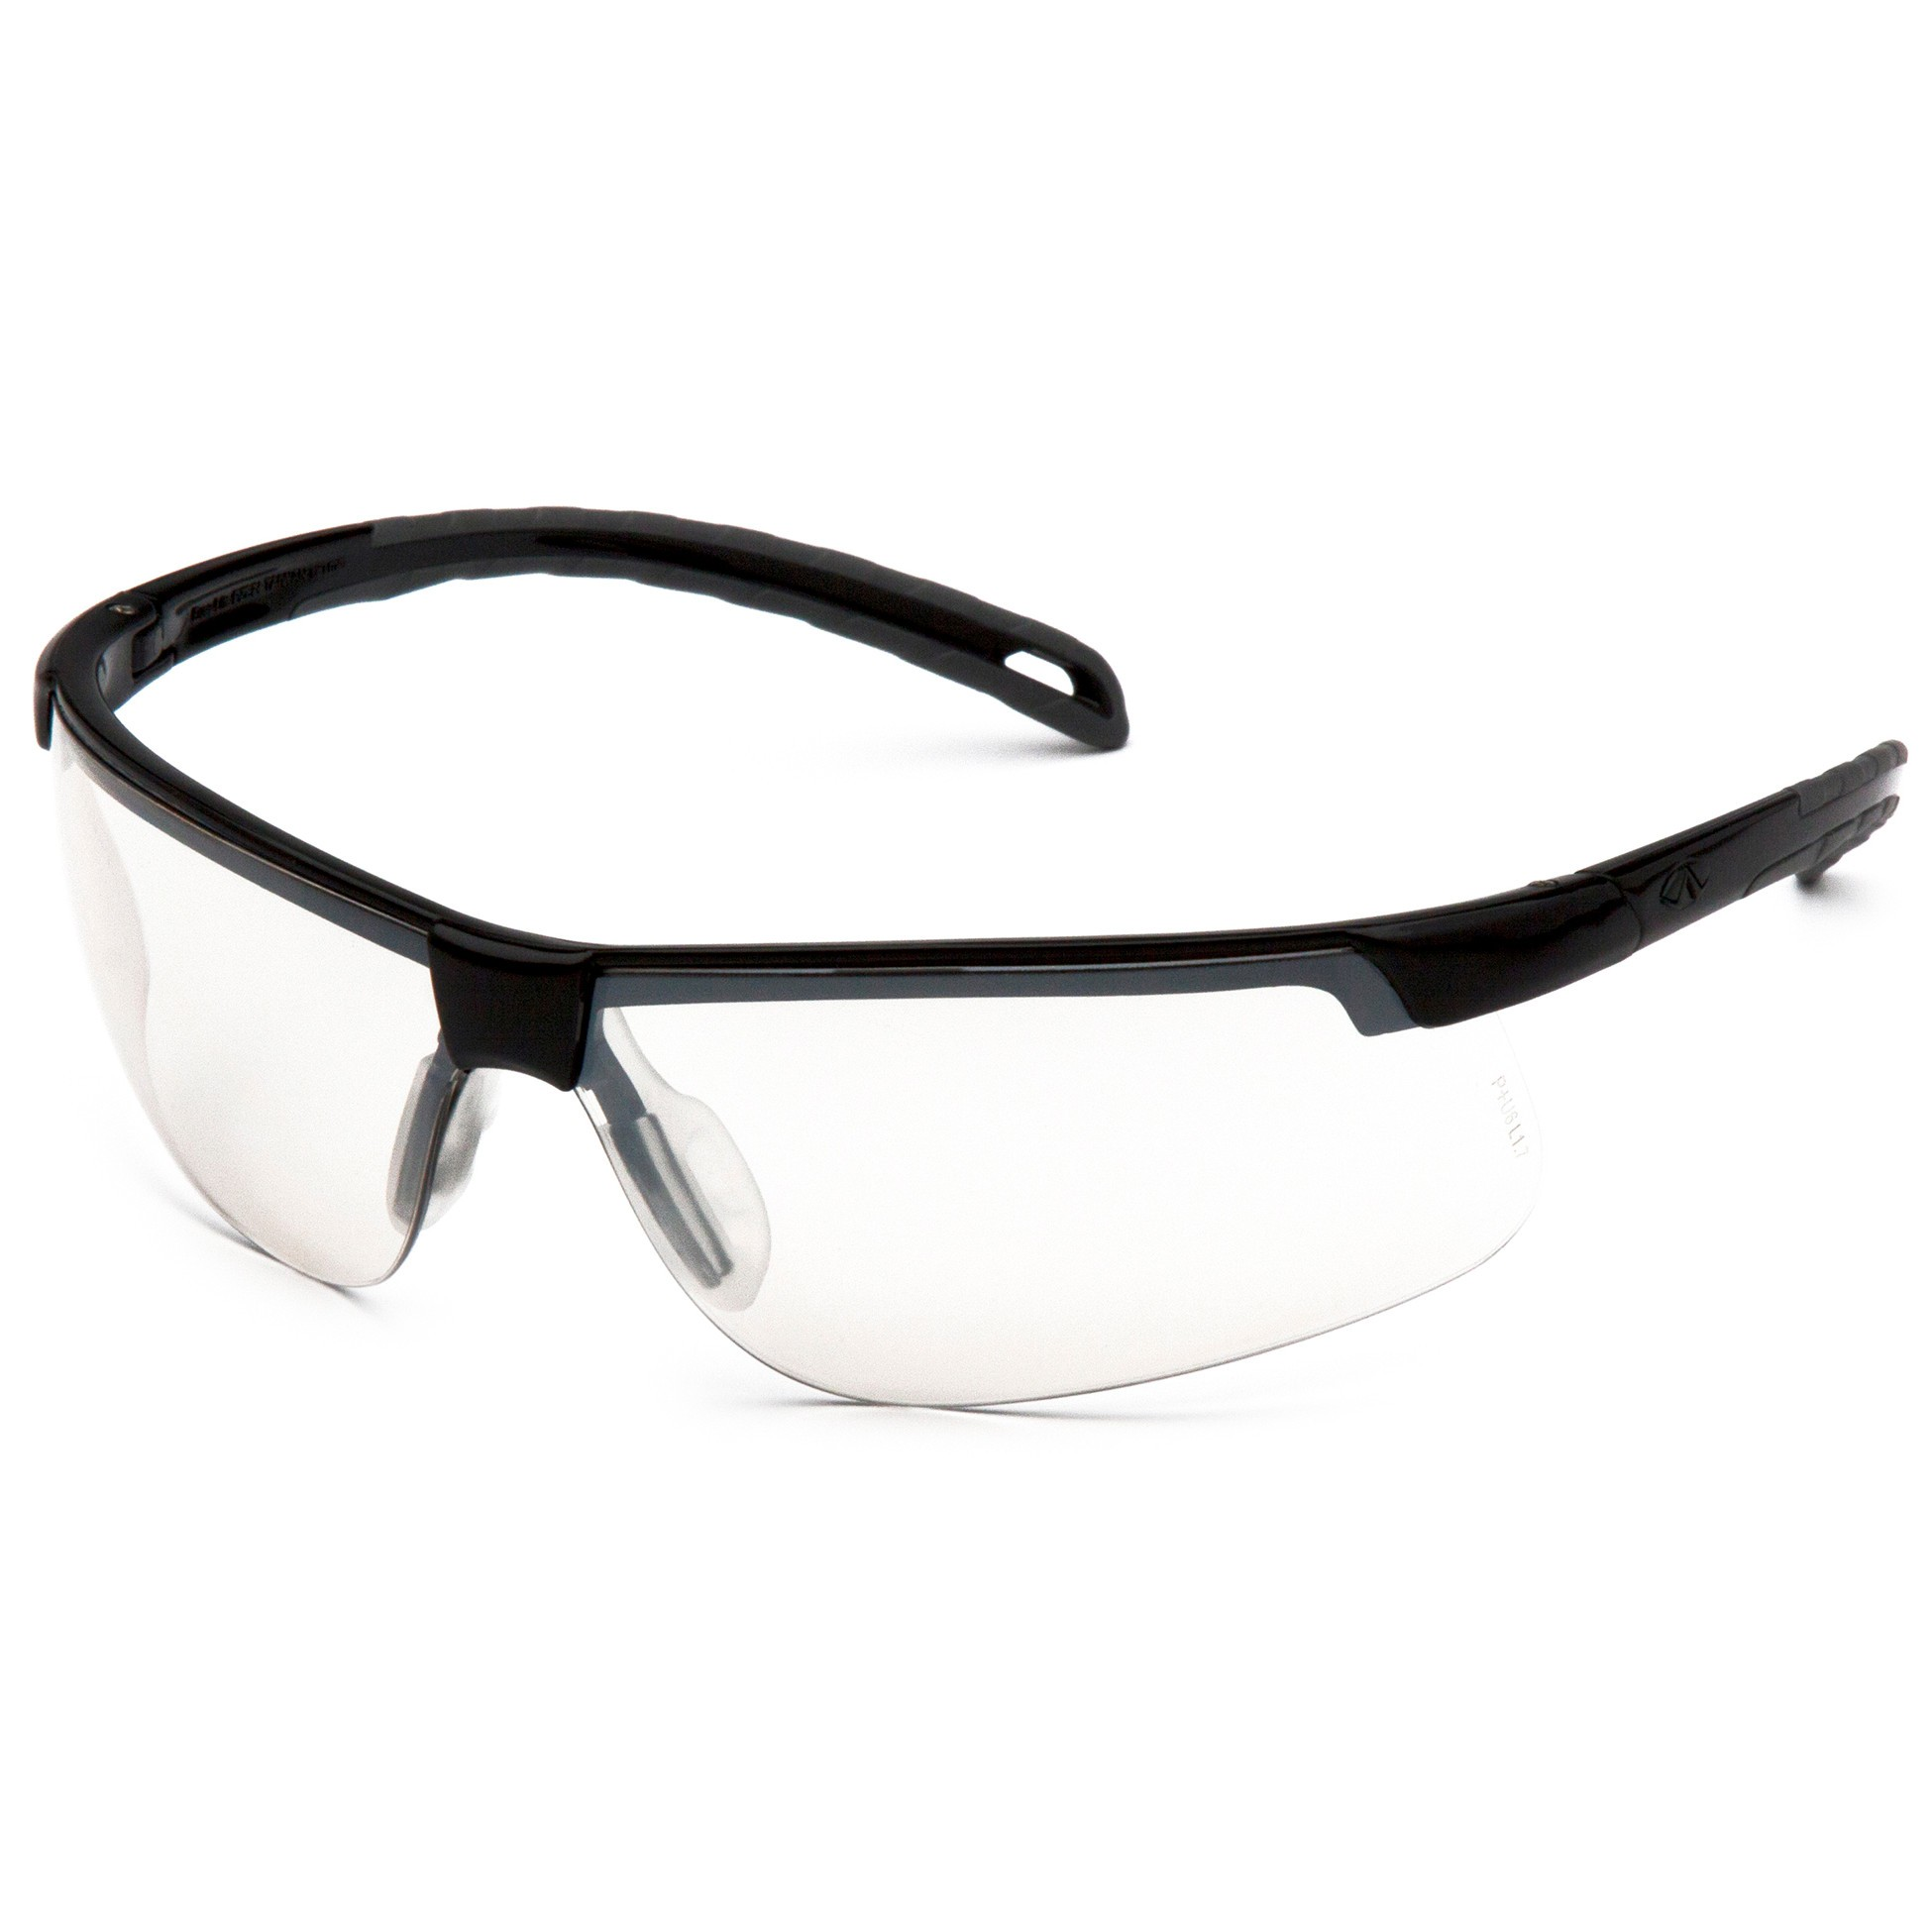 Glasses Frame Adjustment : Pyramex SB8624D Ever-Lite Safety Glasses - Black Frame ...